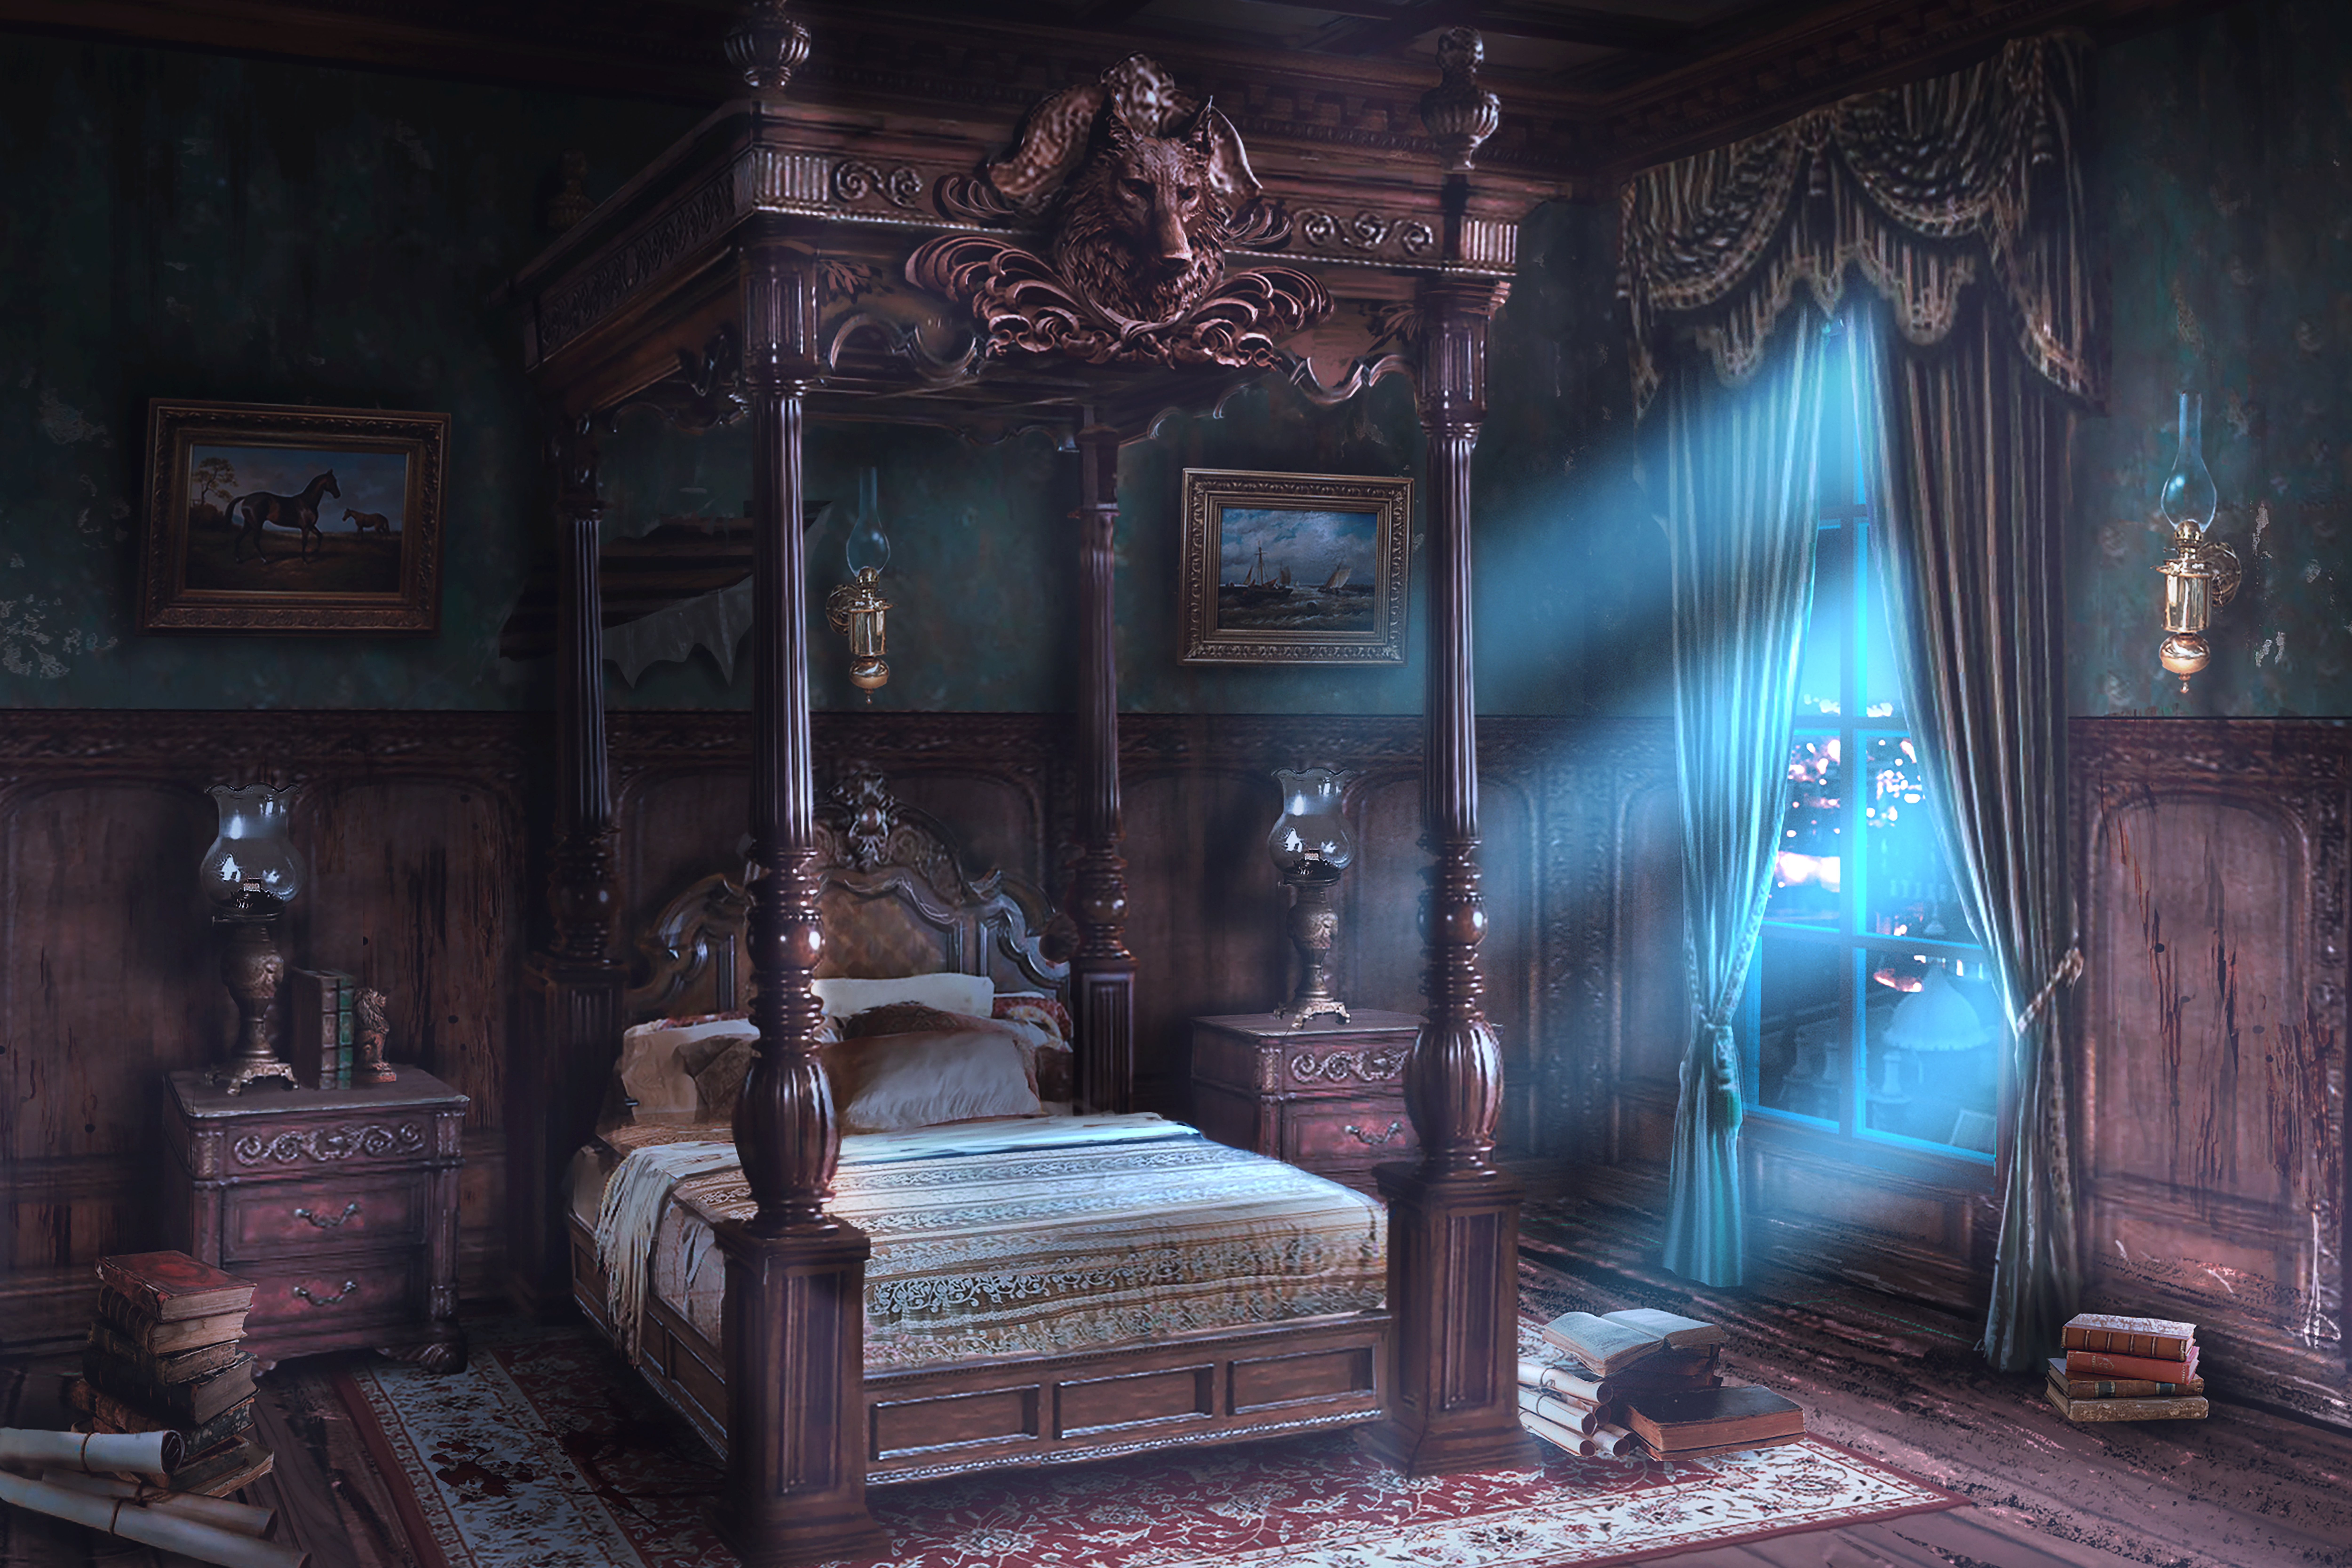 ASC_Chained_bed_v05.jpg